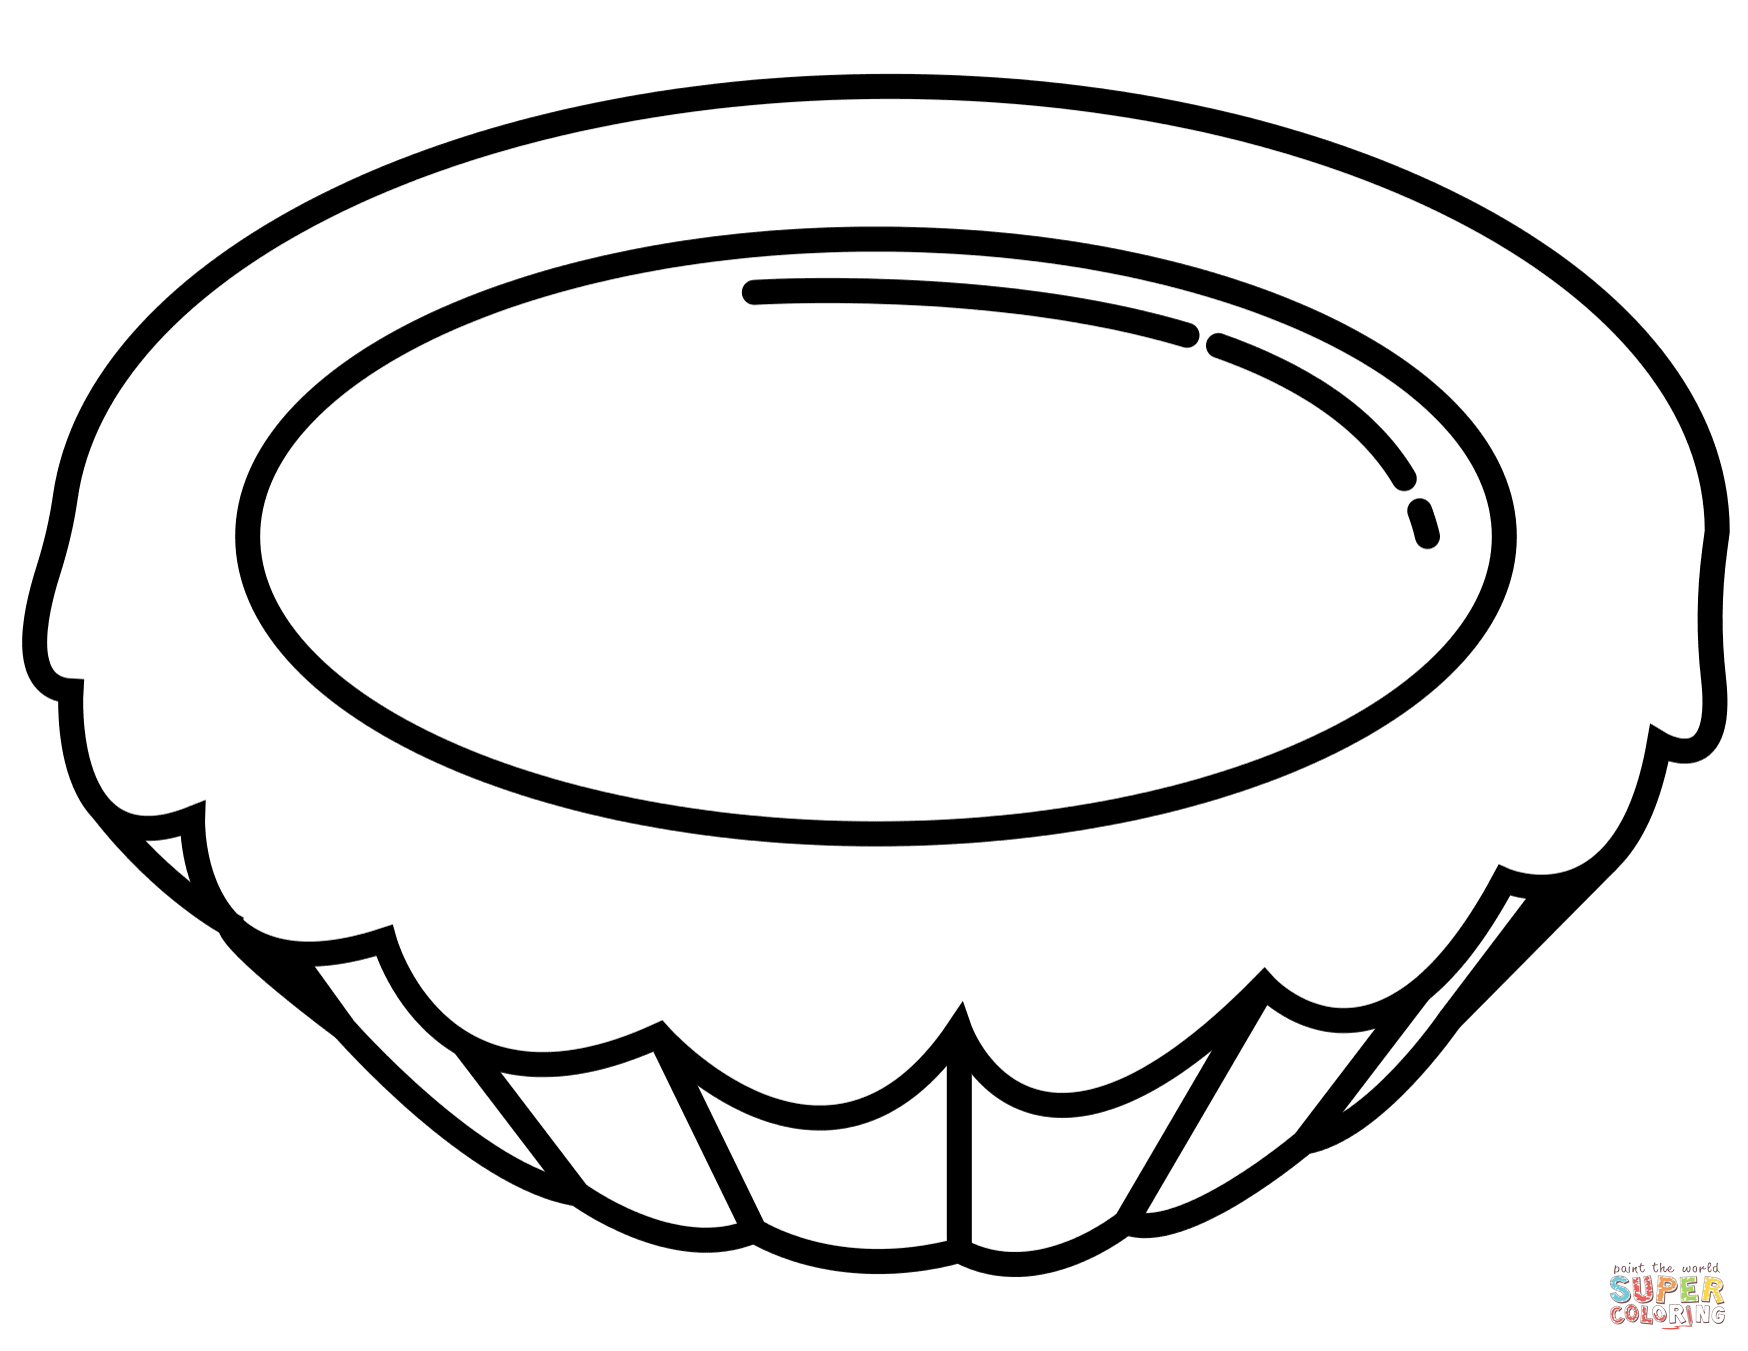 Line Drawing Egg : Egg line drawing at getdrawings free for personal